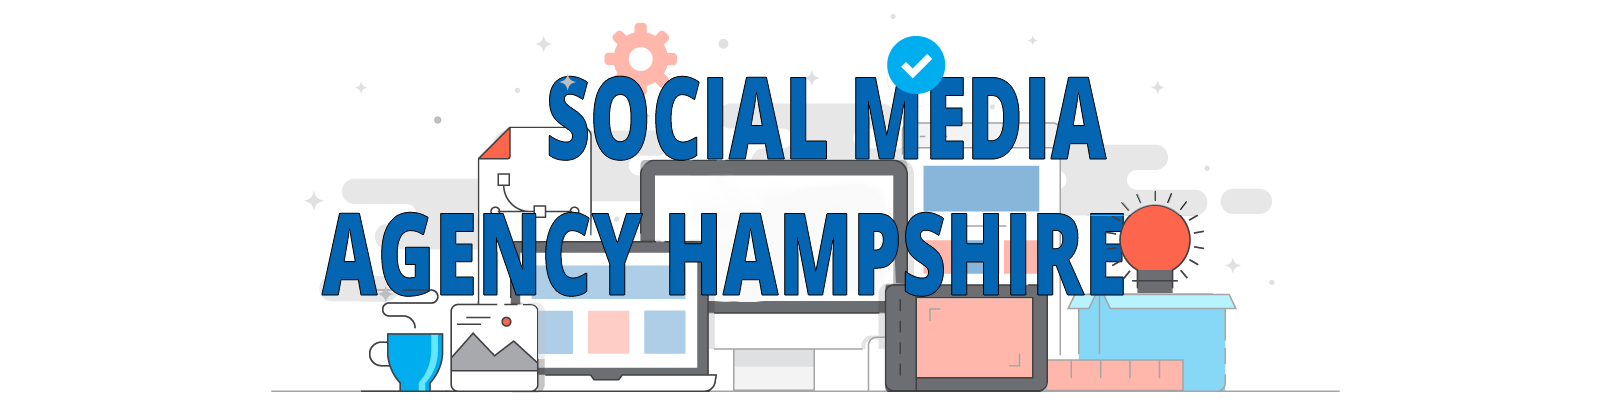 seek social media agency hampshire header with transparent background